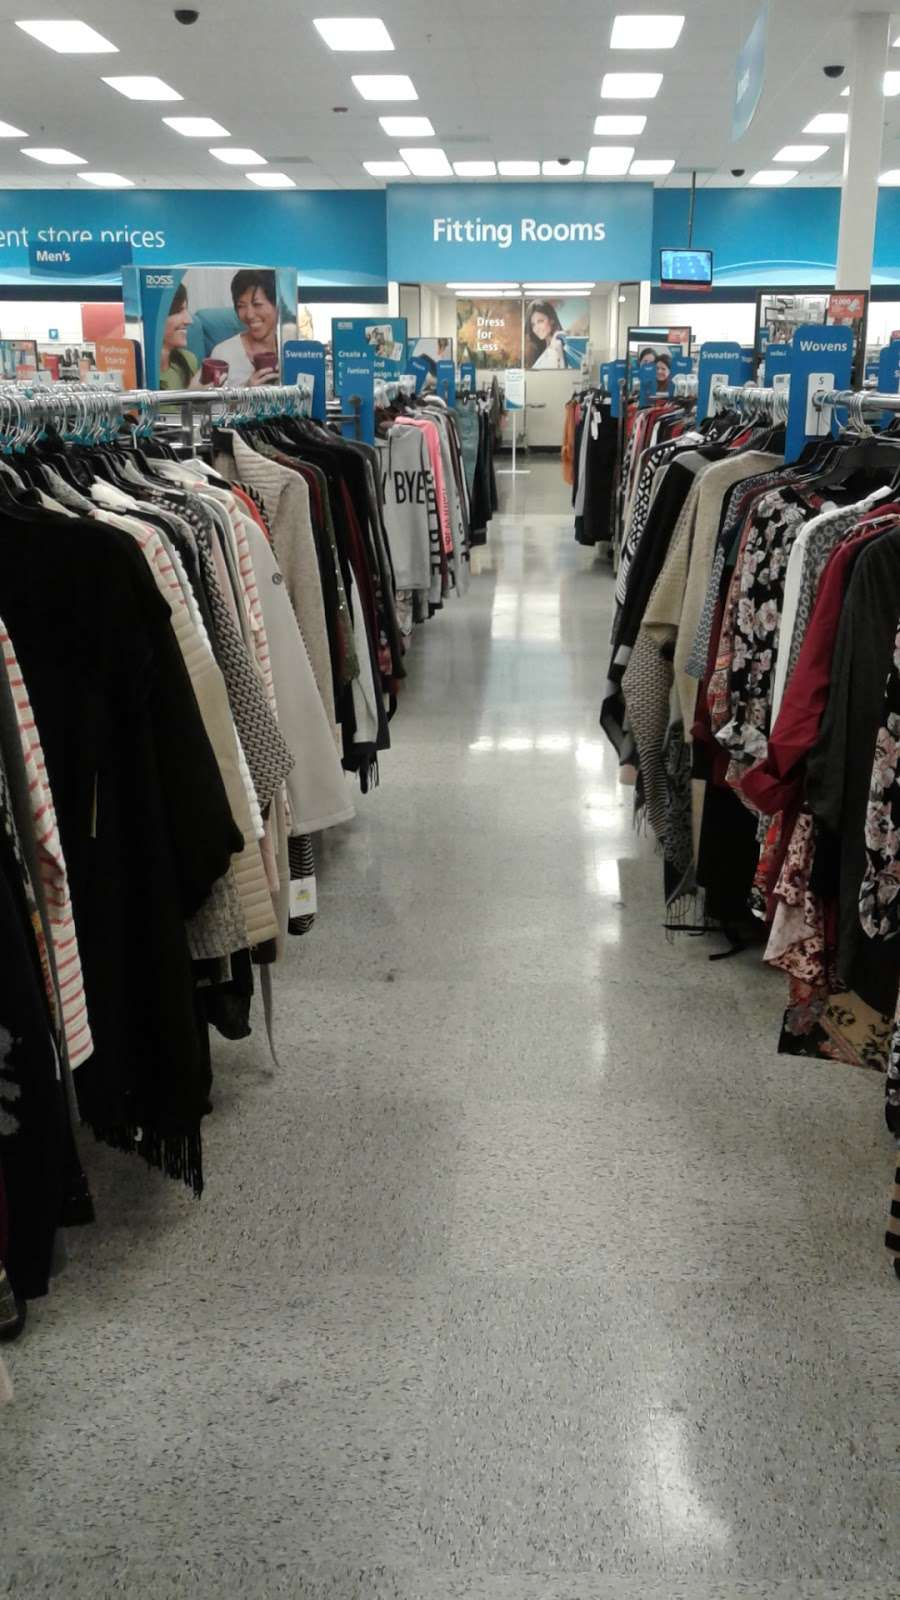 Ross Dress for Less - clothing store  | Photo 1 of 10 | Address: 2500 Gwynns Falls Pkwy, Baltimore, MD 21216, USA | Phone: (410) 225-9780